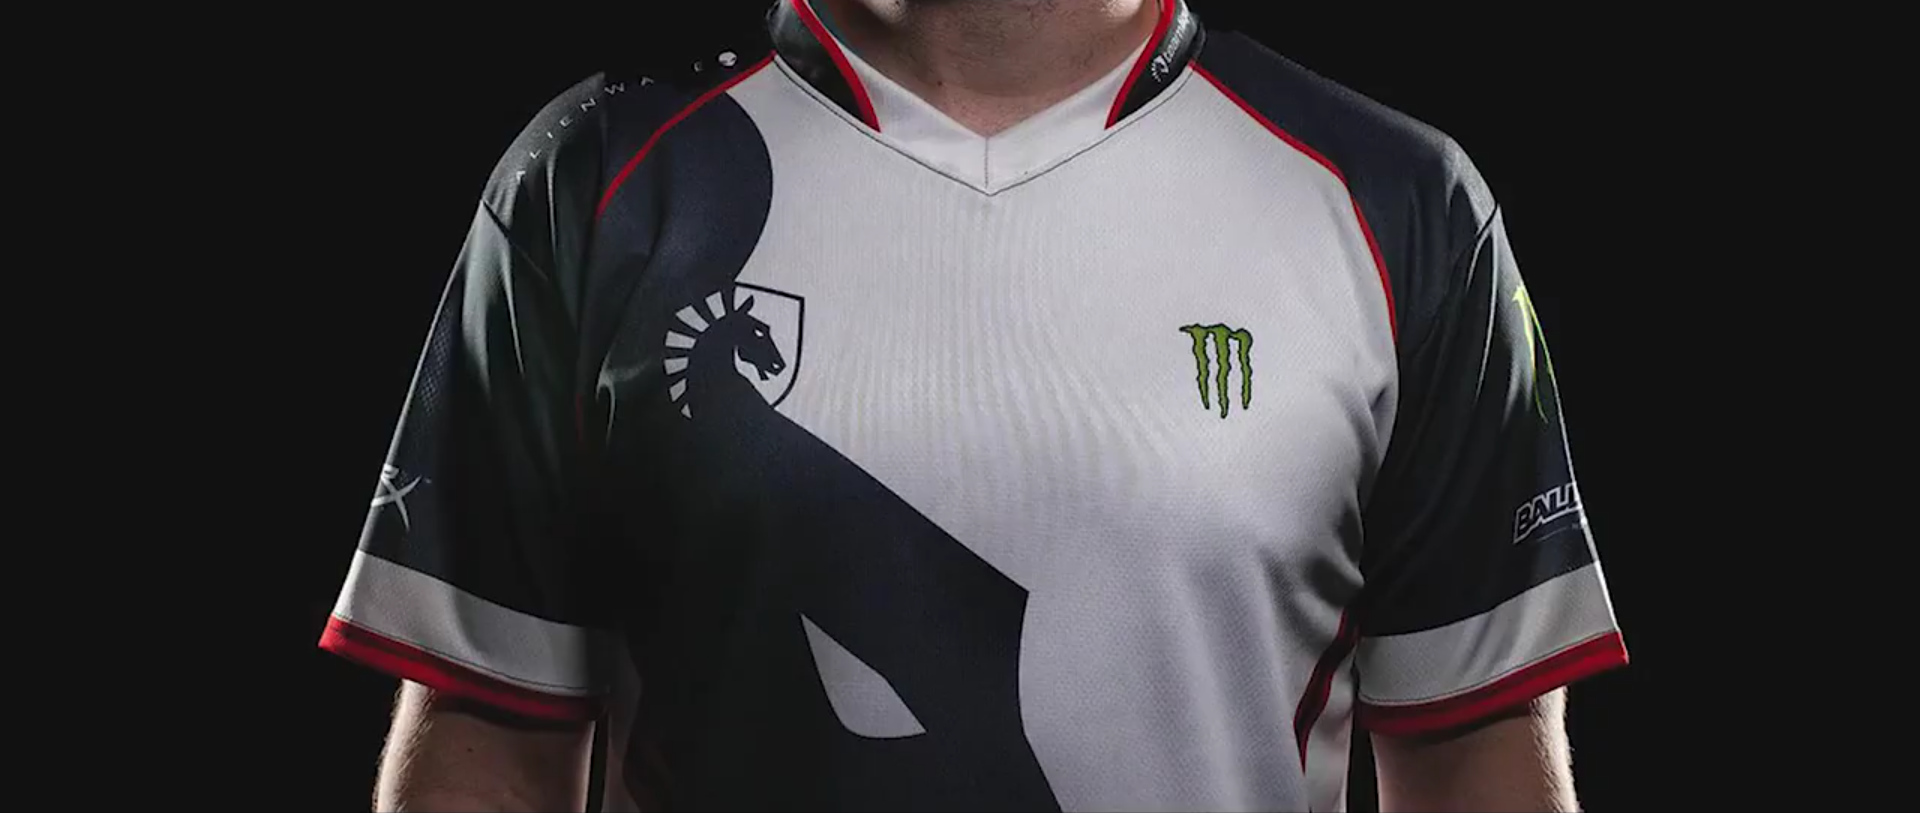 Uniforme Team Liquid